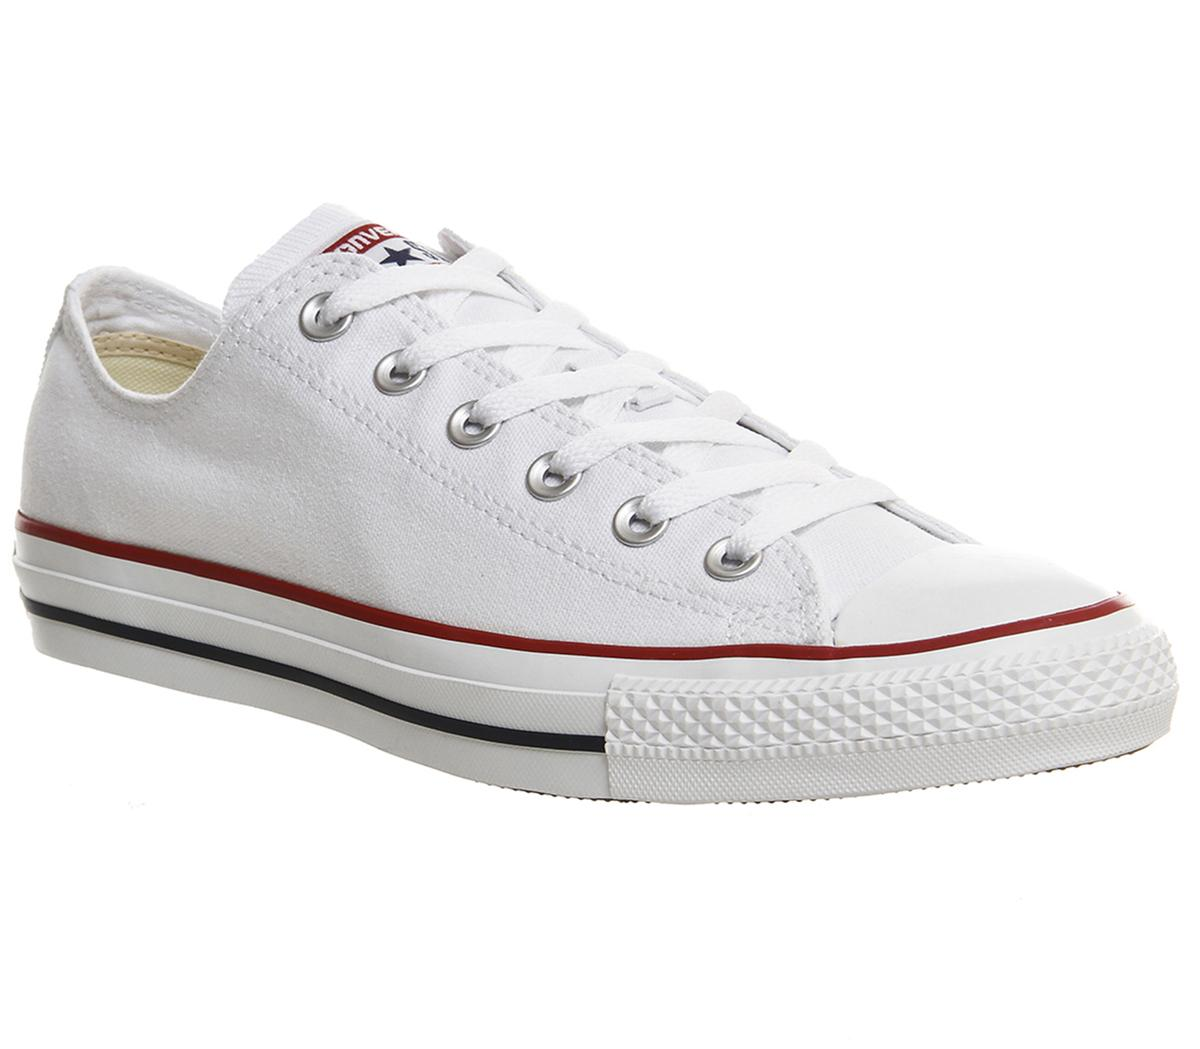 var man kan köpa köpa billigt bra kvalitet Converse All Star Low White Canvas - Unisex Sports